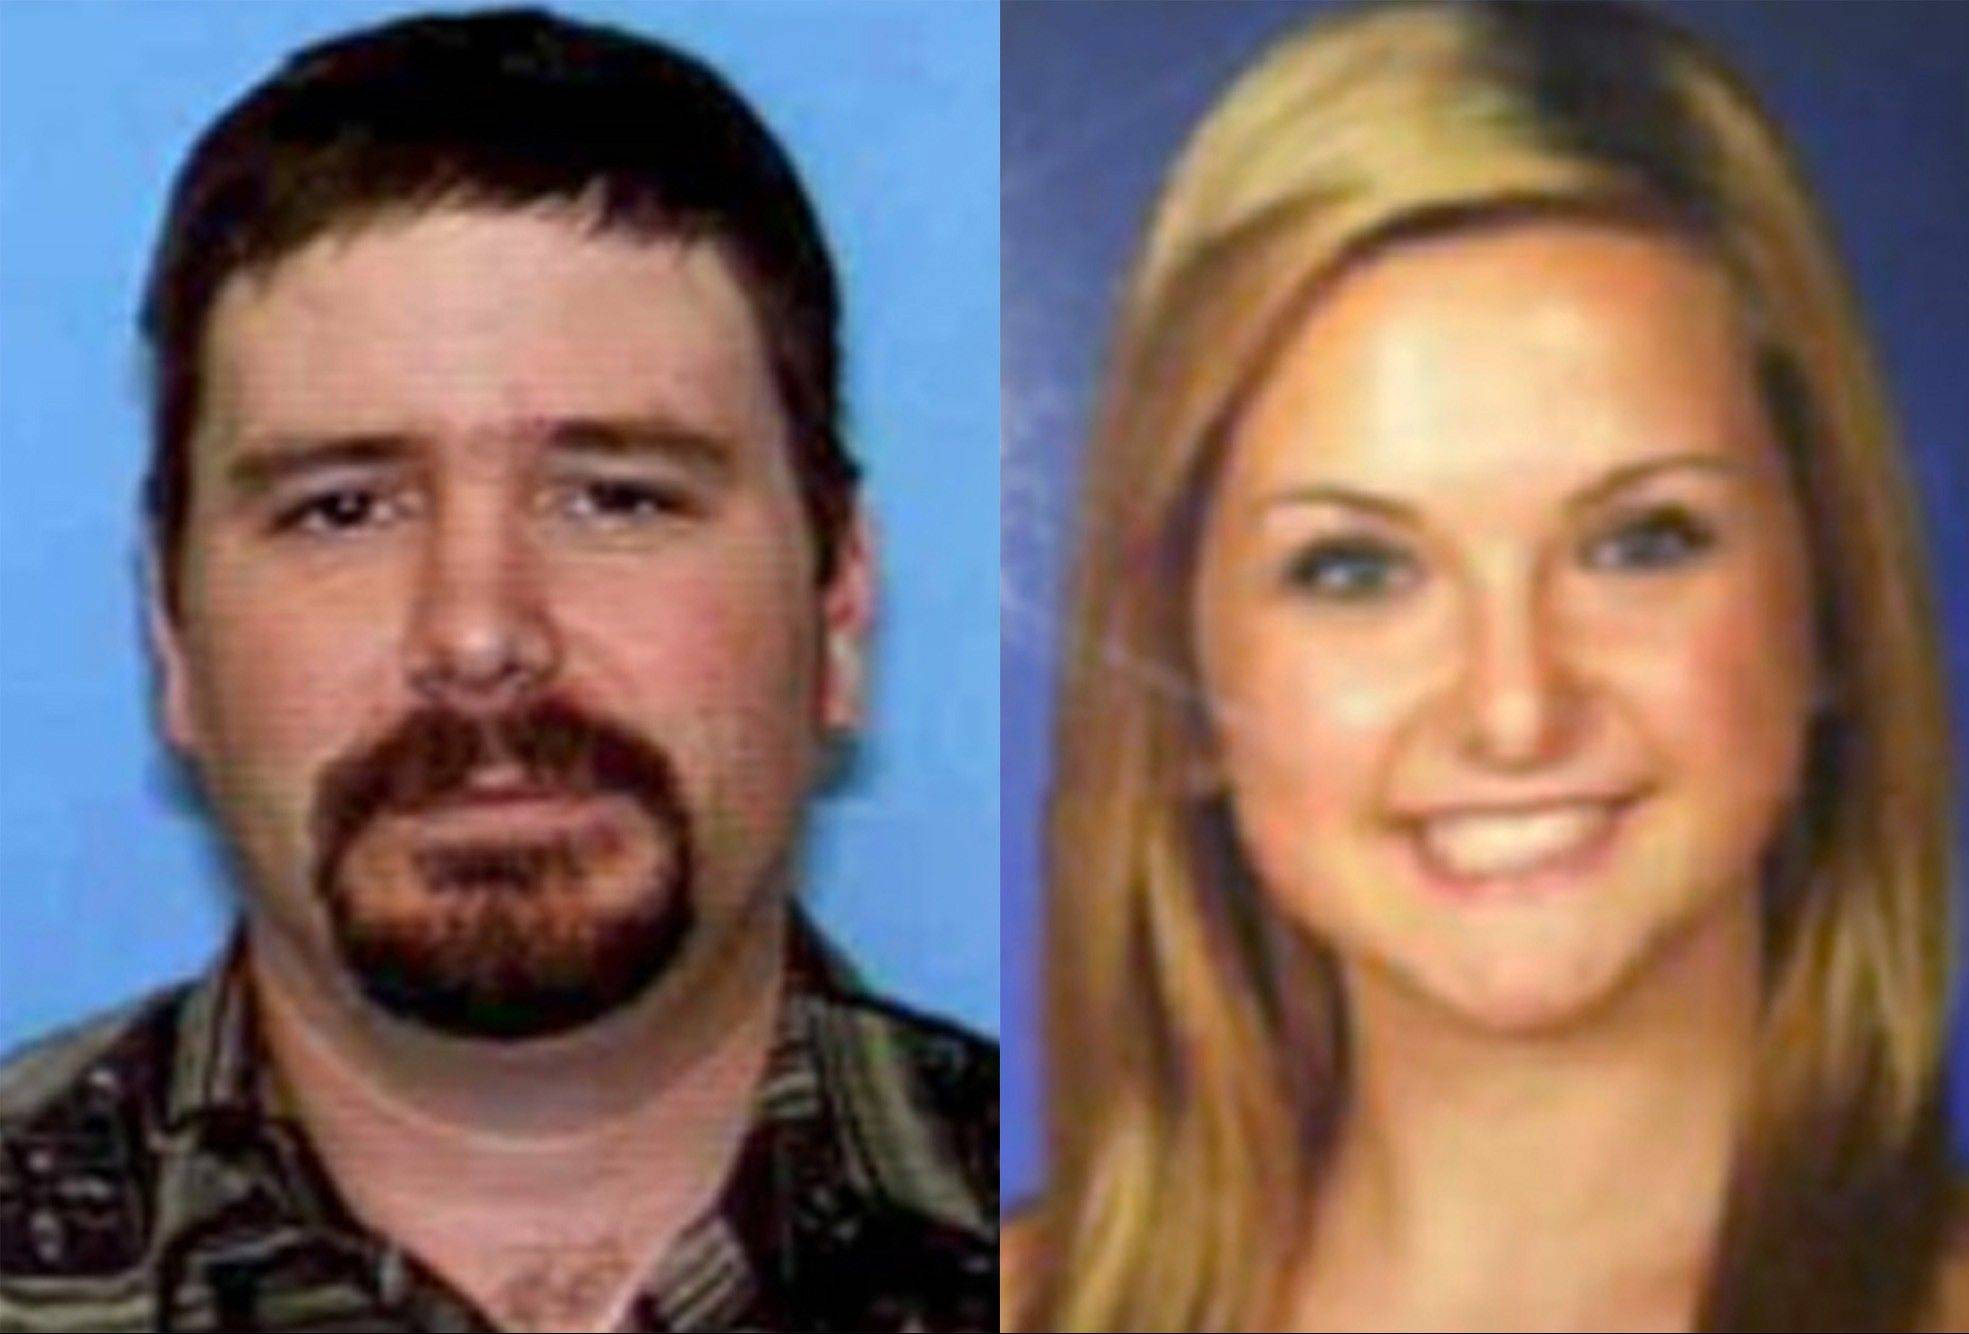 James Lee DiMaggio, 40, left, and Hannah Anderson, 16. A search ended Saturday for DiMaggio, suspected of abducting 16-year-old family friend Hannah. DiMaggio is suspected of killing Hannah's mother and her 8-year-old brother.